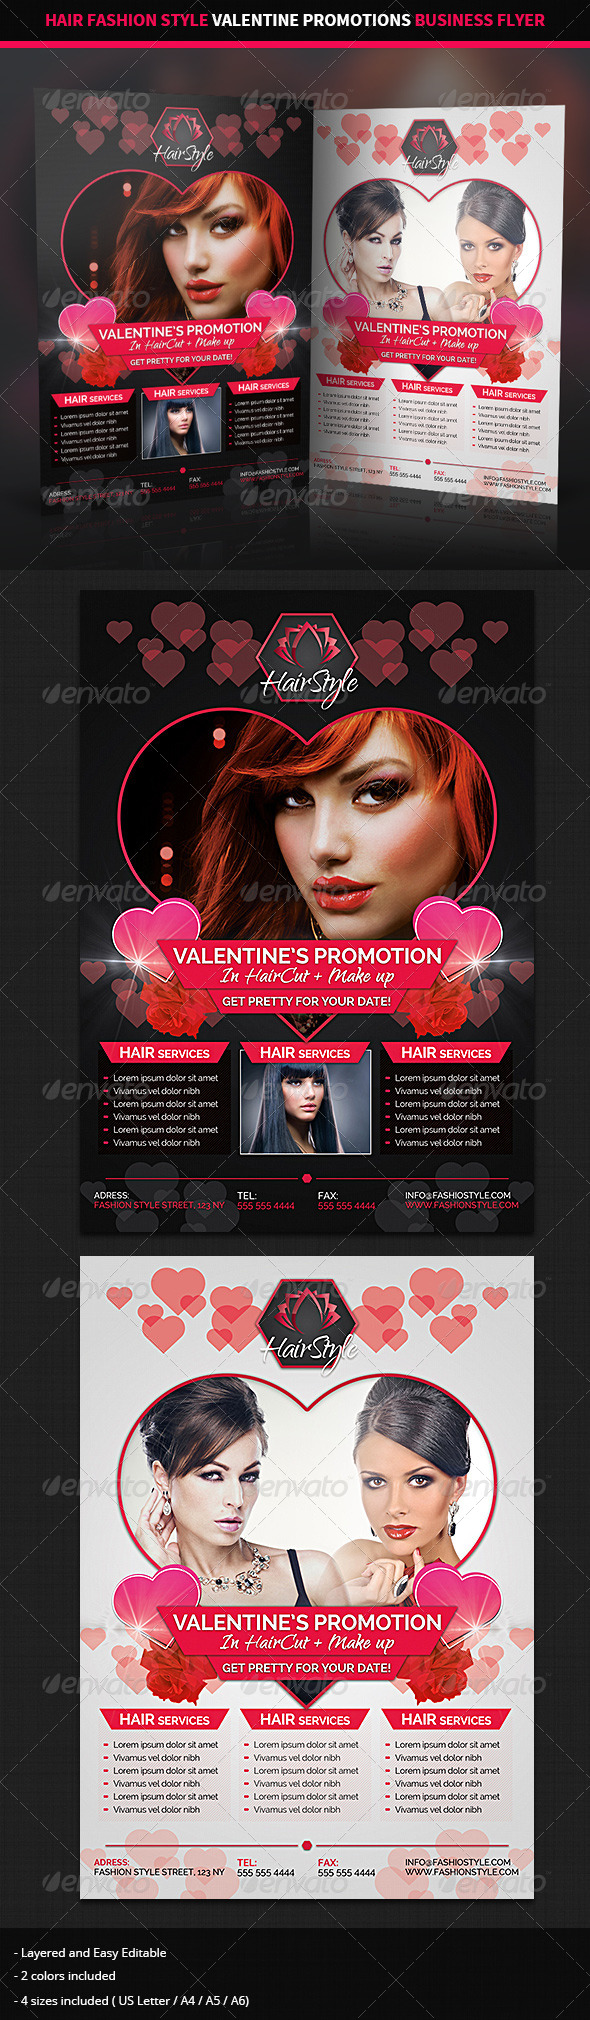 GraphicRiver Hair Salon Valentine Promotions Business Flyer 6556181